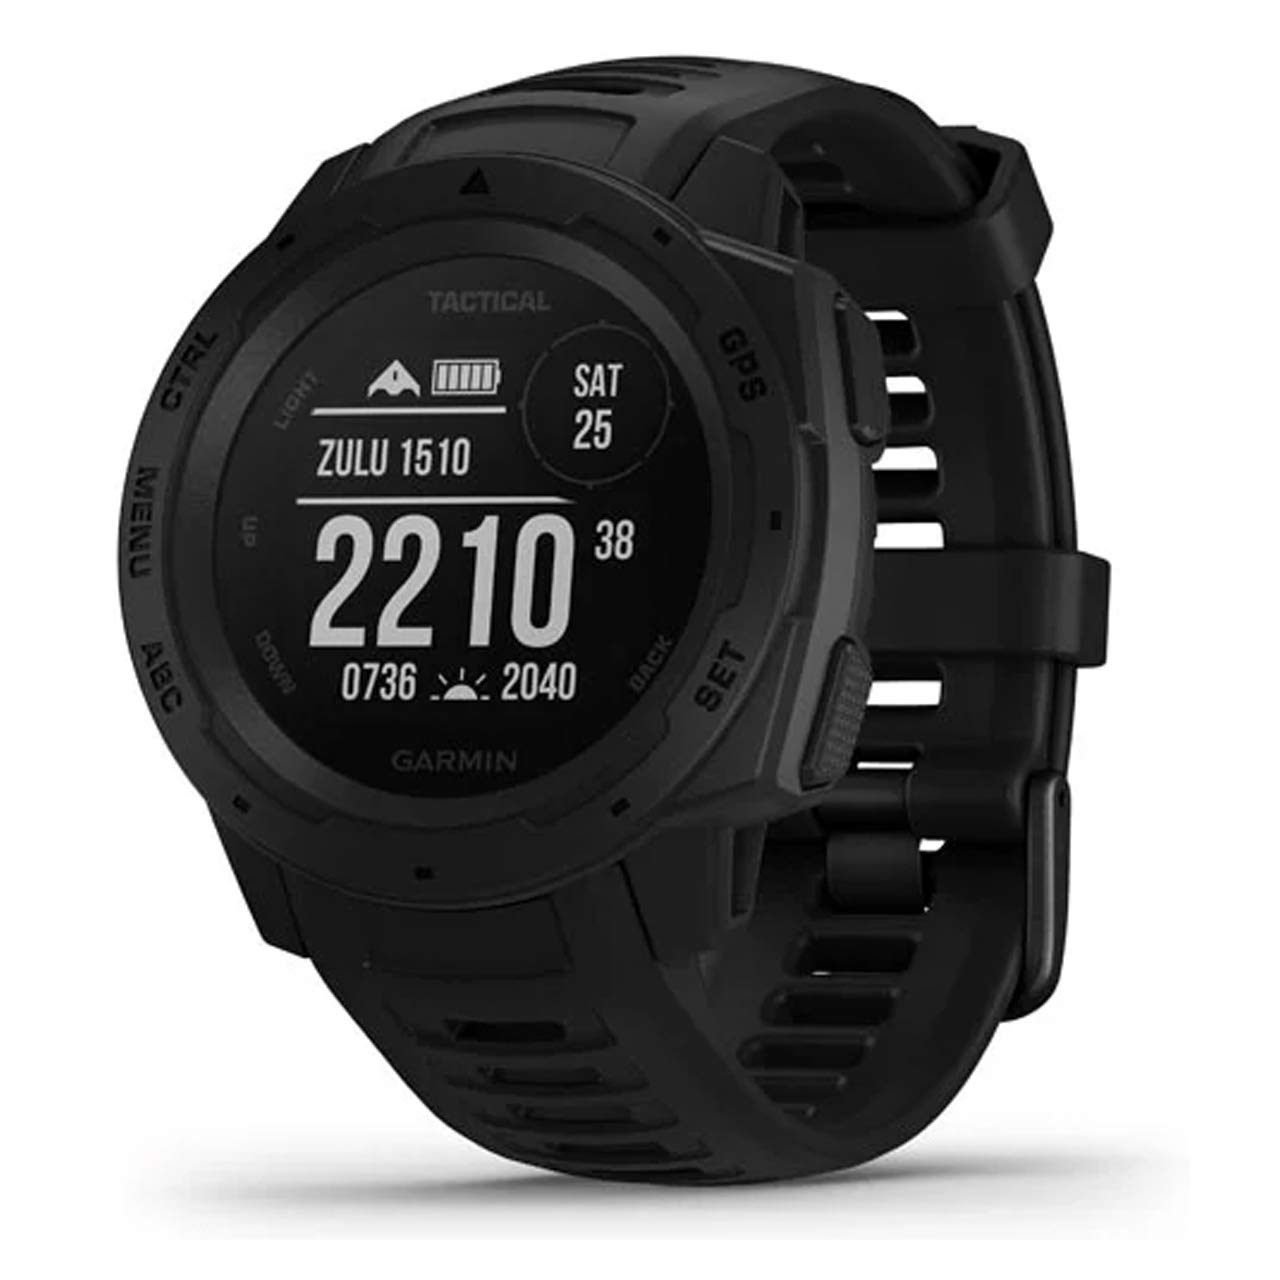 Garmin Instinct Tactical, Rugged GPS Watch, Tactical Specific Features, Constructed to U.S. Military Standard 810G for Thermal, Shock and Water Resistance, Black by Garmin